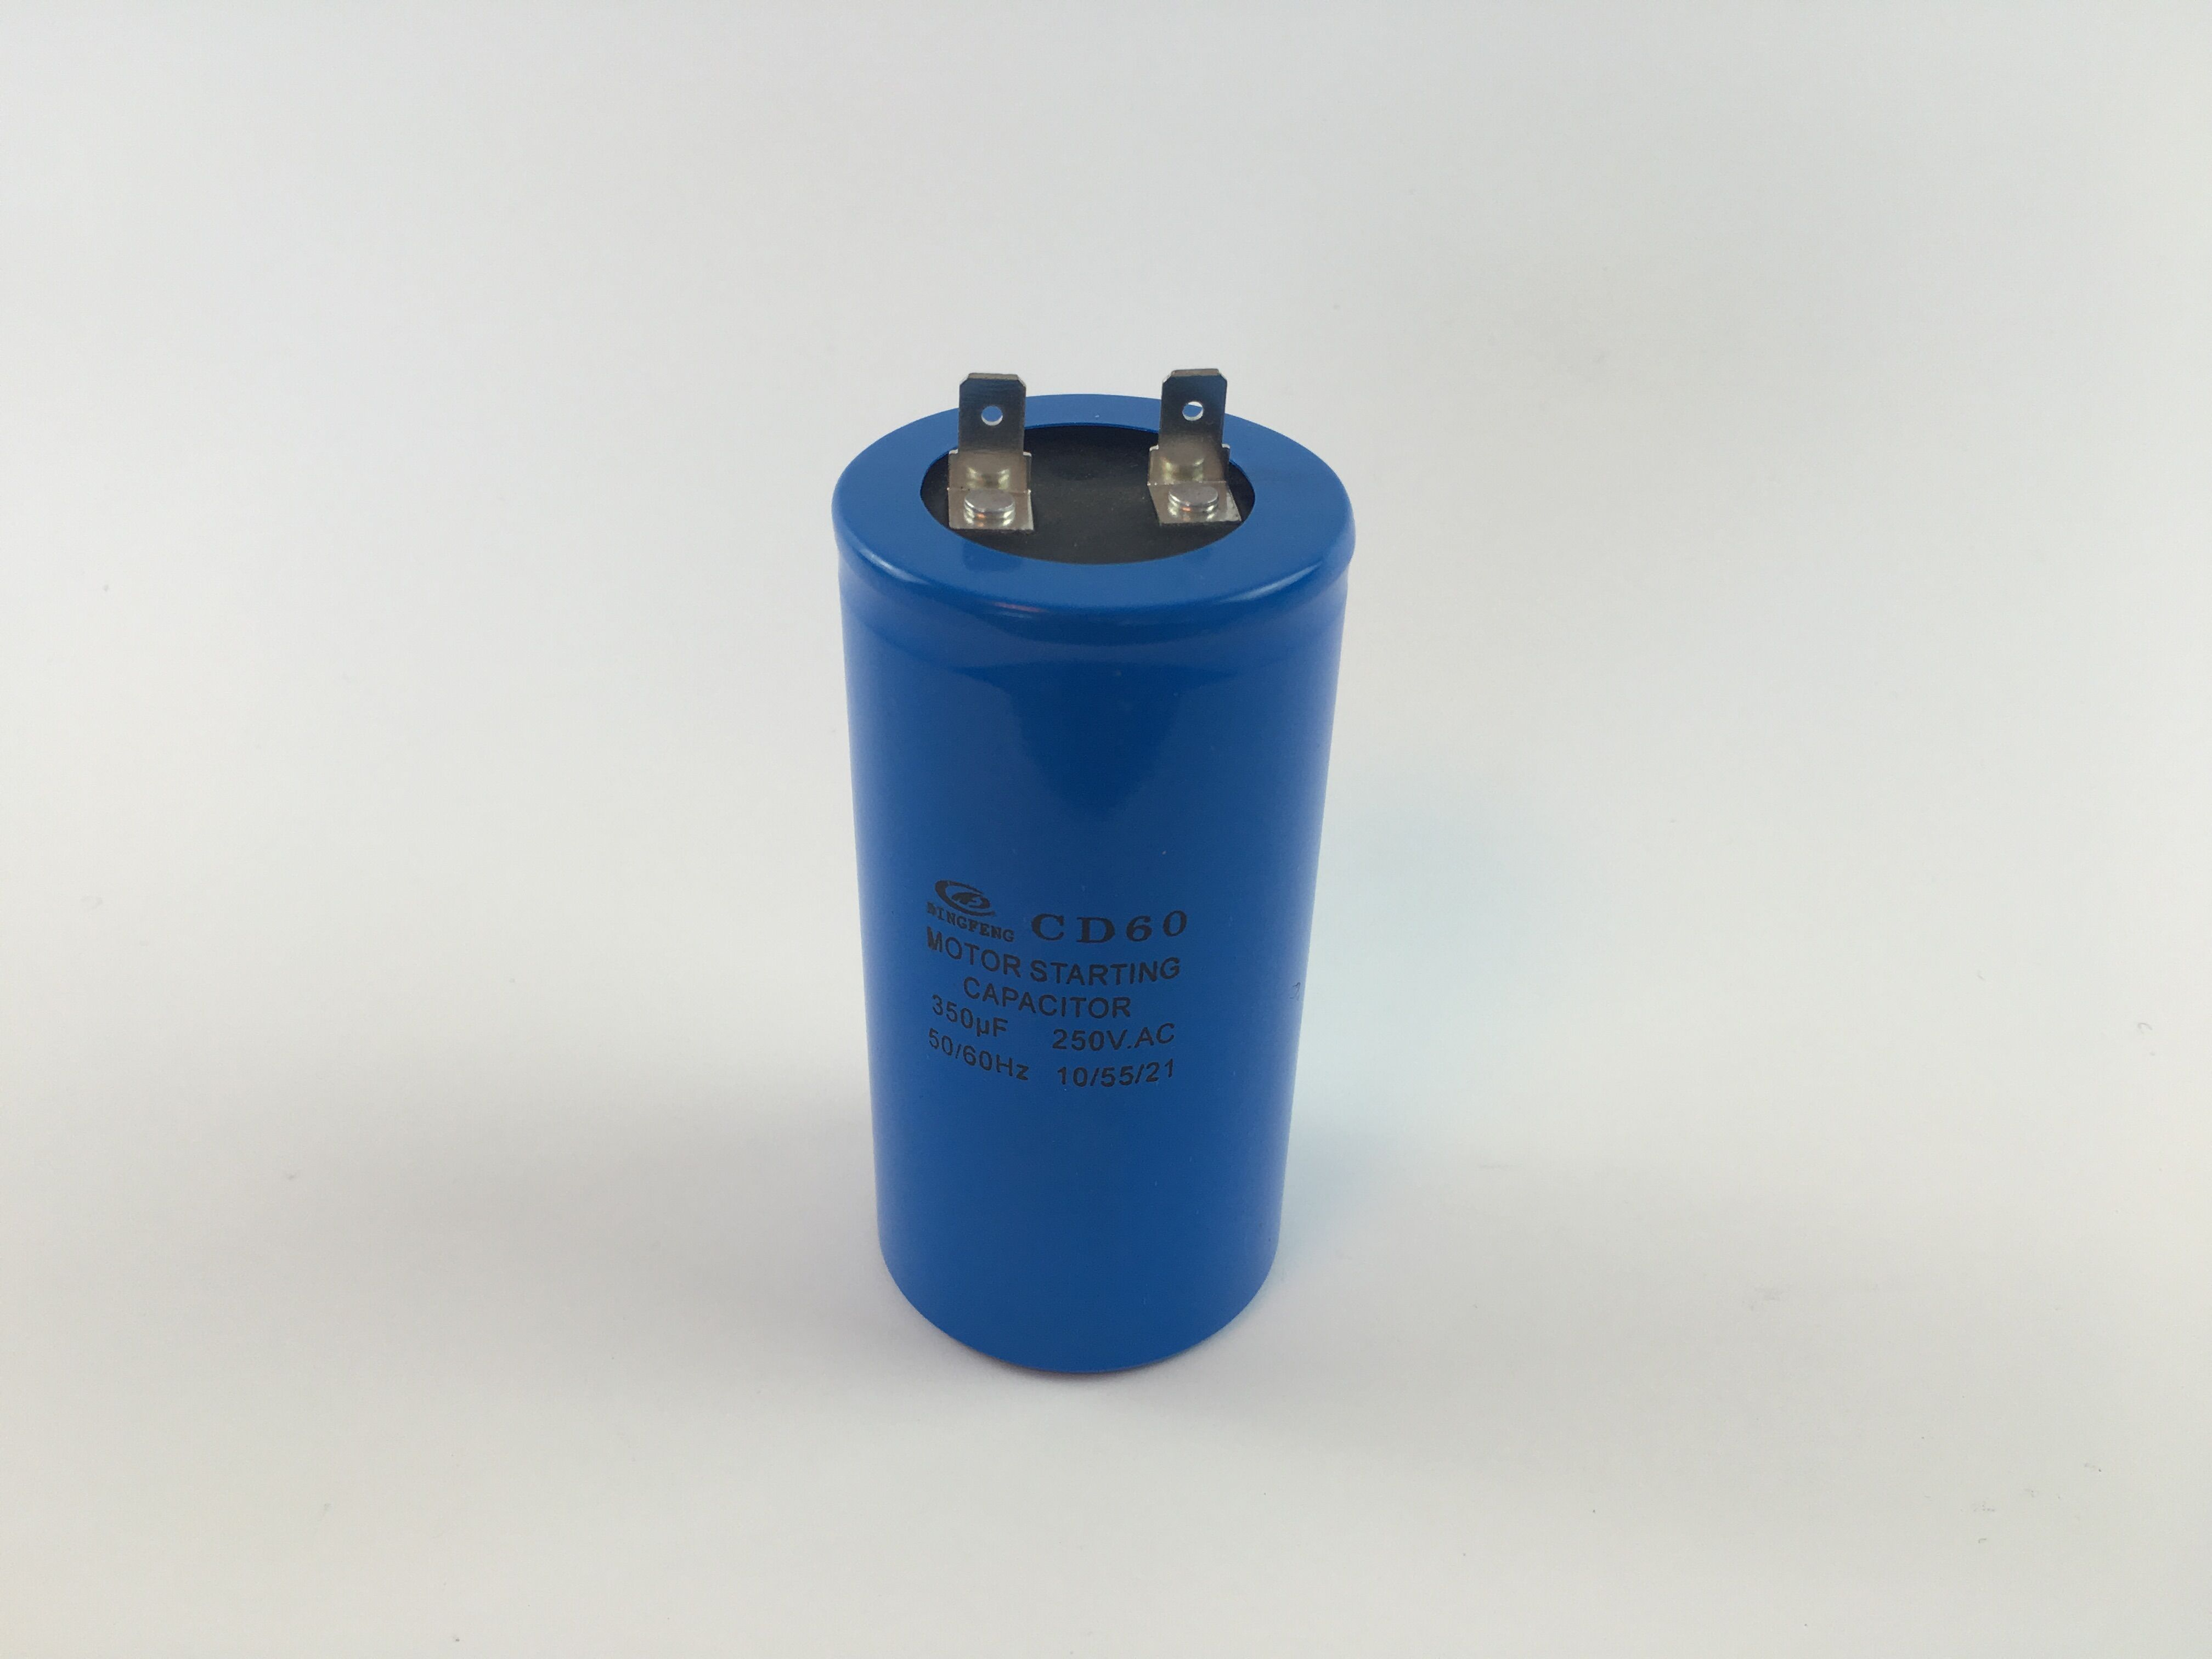 motor starting capacitor,CD60 capacitor,aluminum capacitor